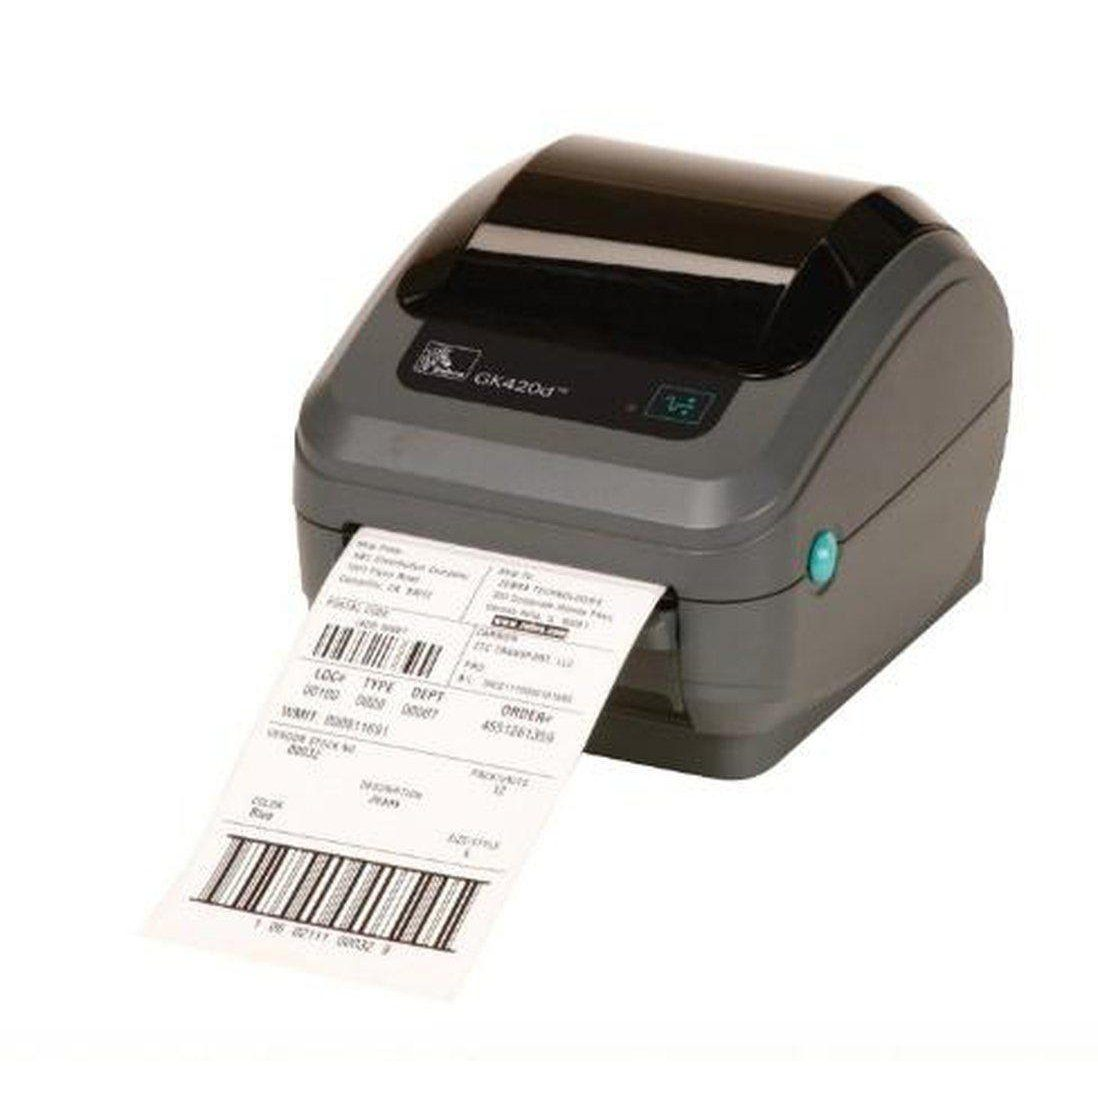 Zebra GK420d Direct Thermal Label Printer Direct 203DPI Ethernet, USB | GK42-202220-000 Label Printer Zebra